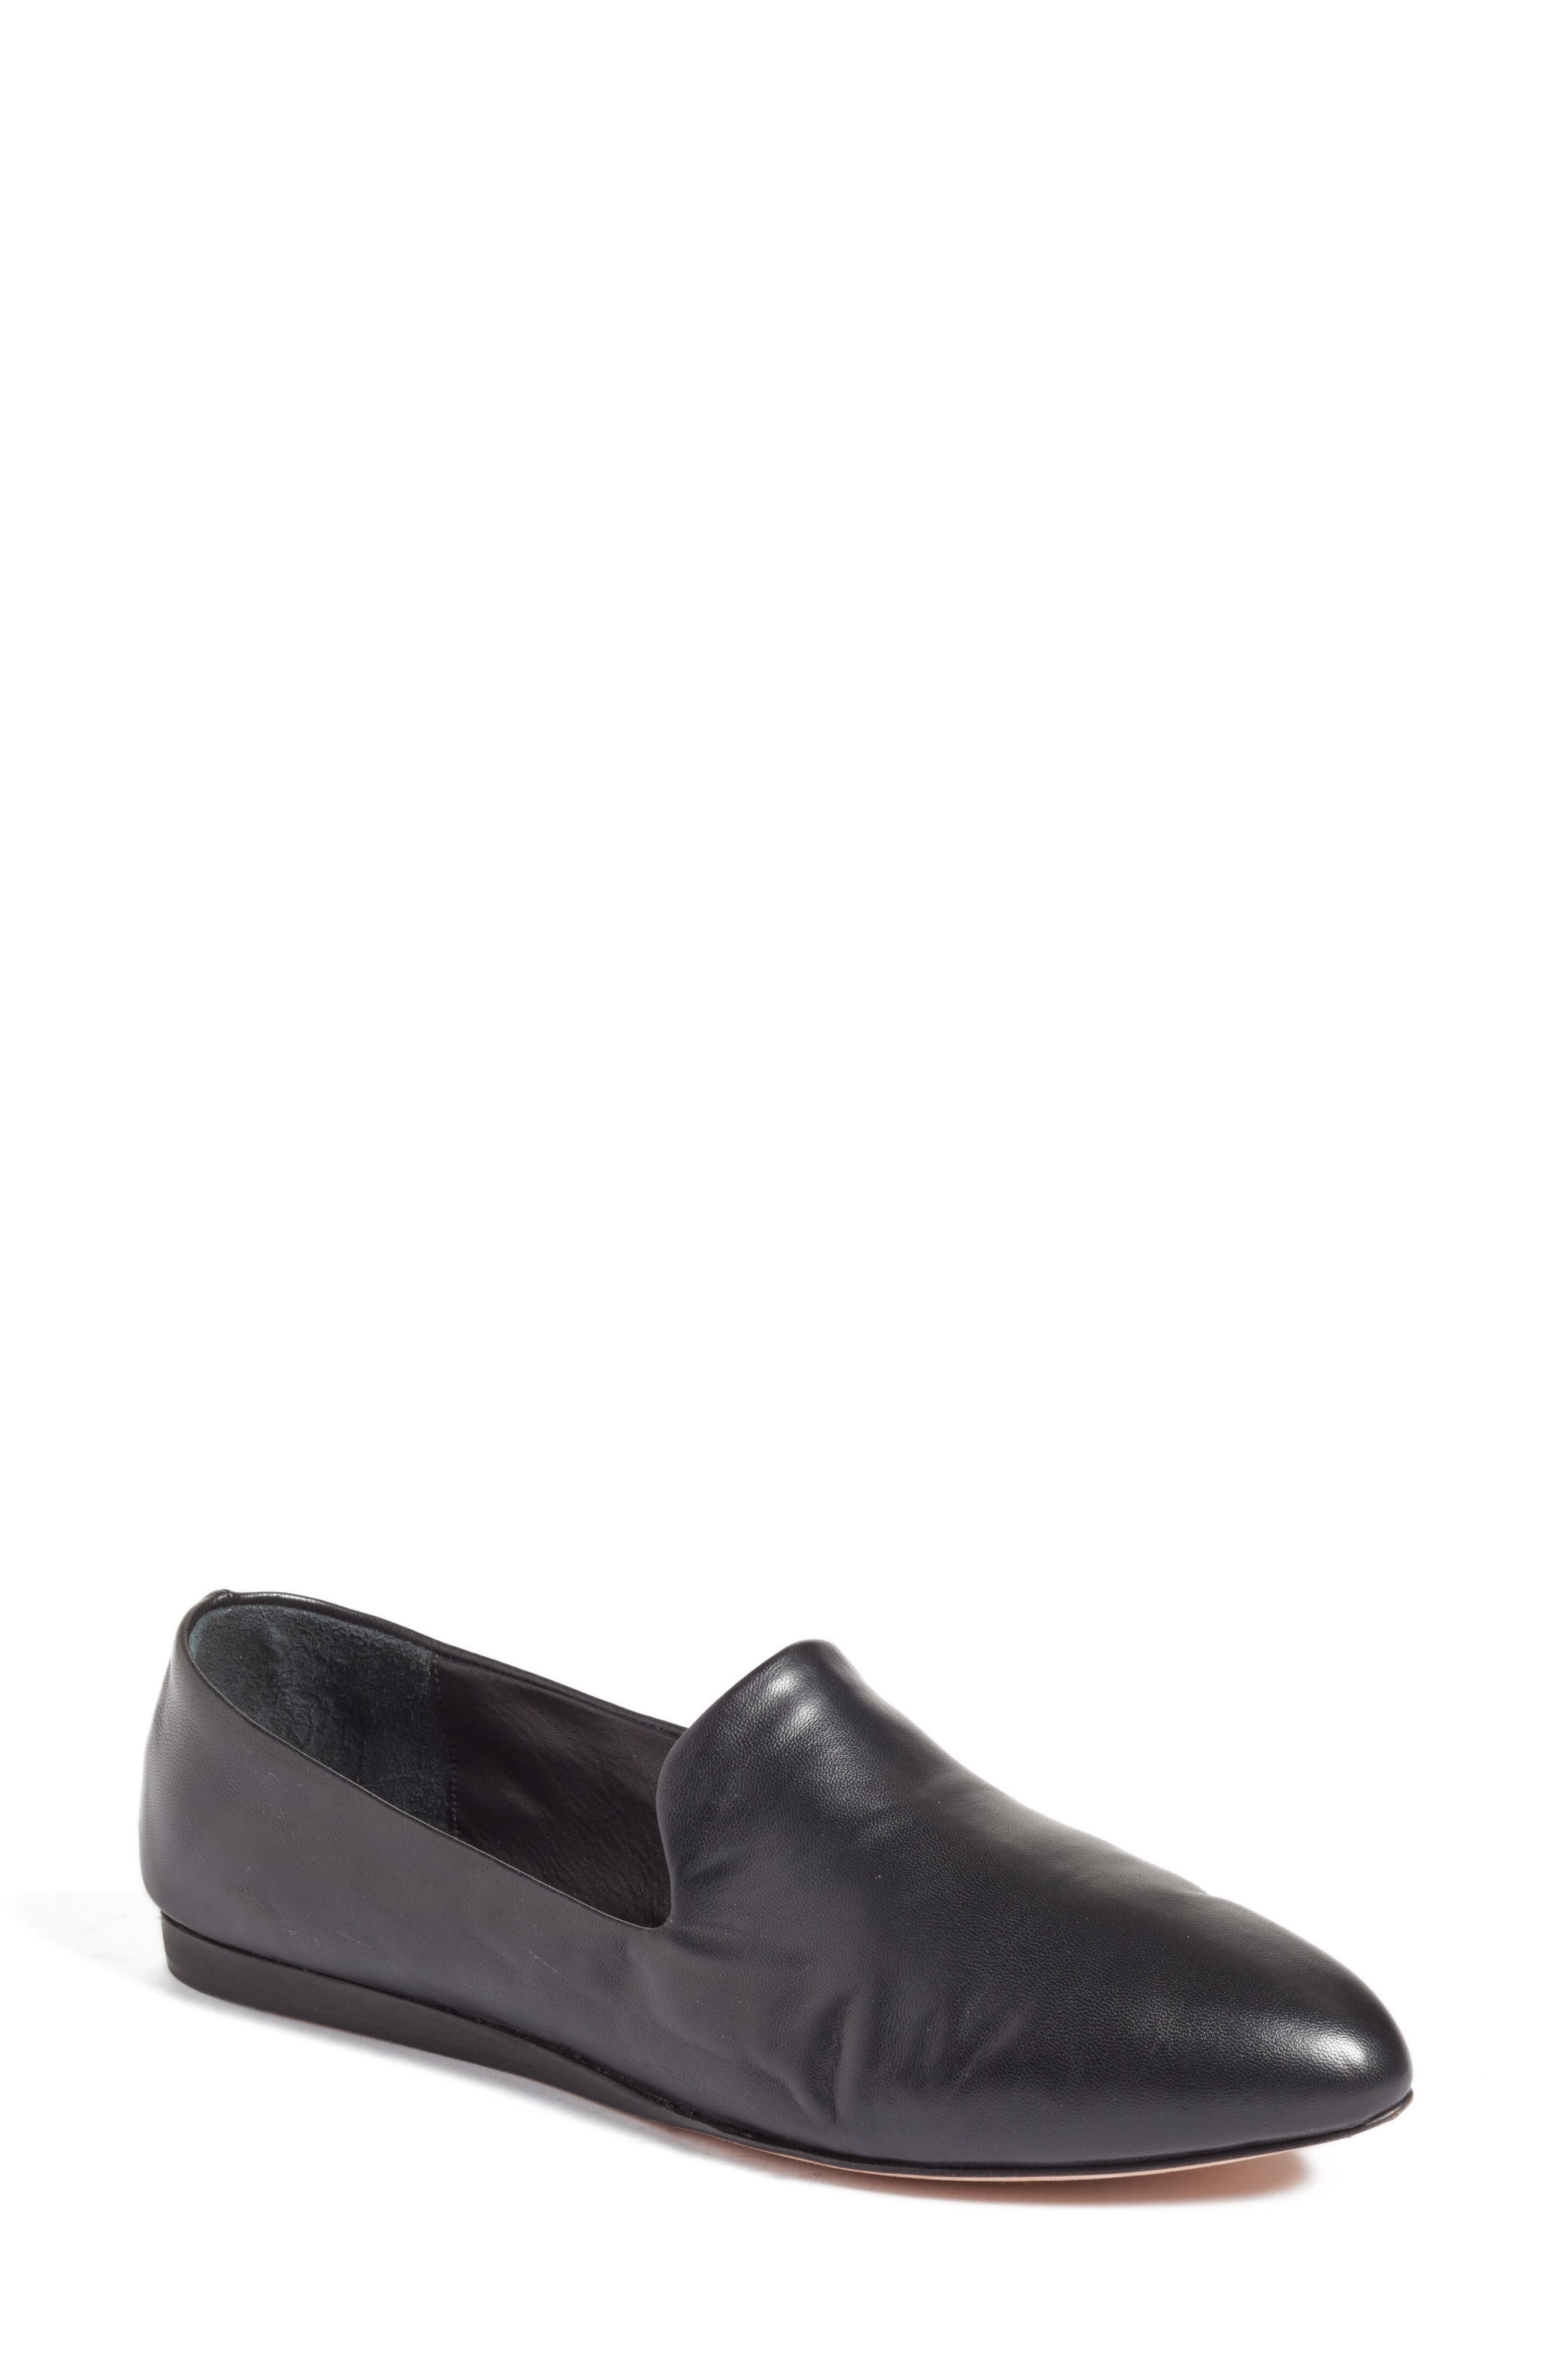 Griffin Pointy Toe Loafer,                             Main thumbnail 1, color,                             001